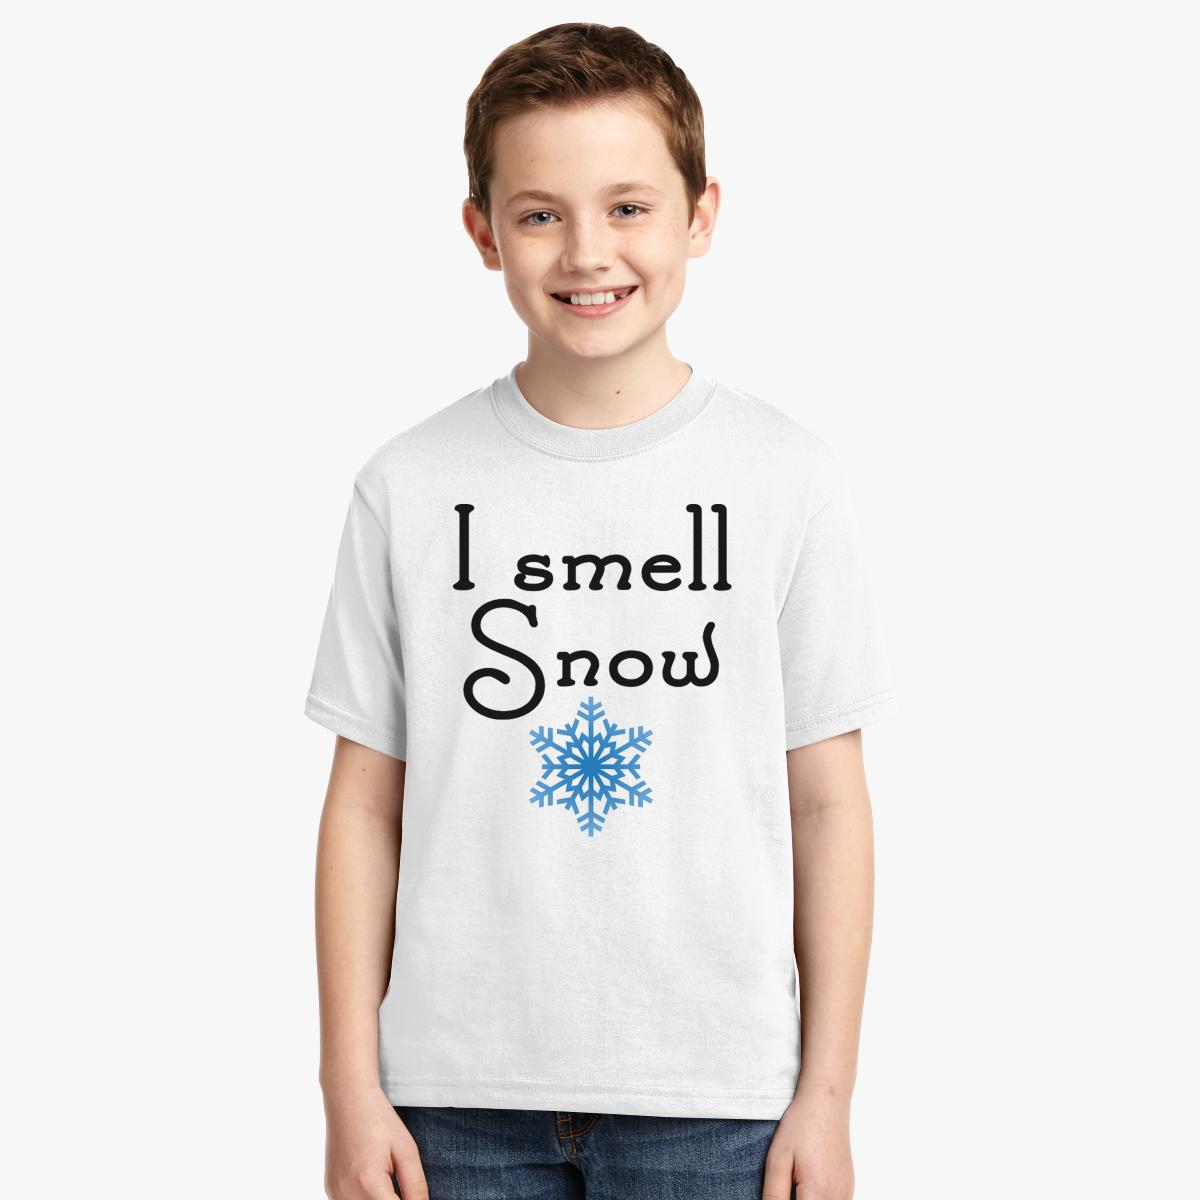 Gilmore Girls - I smell Snow  Youth T-shirt